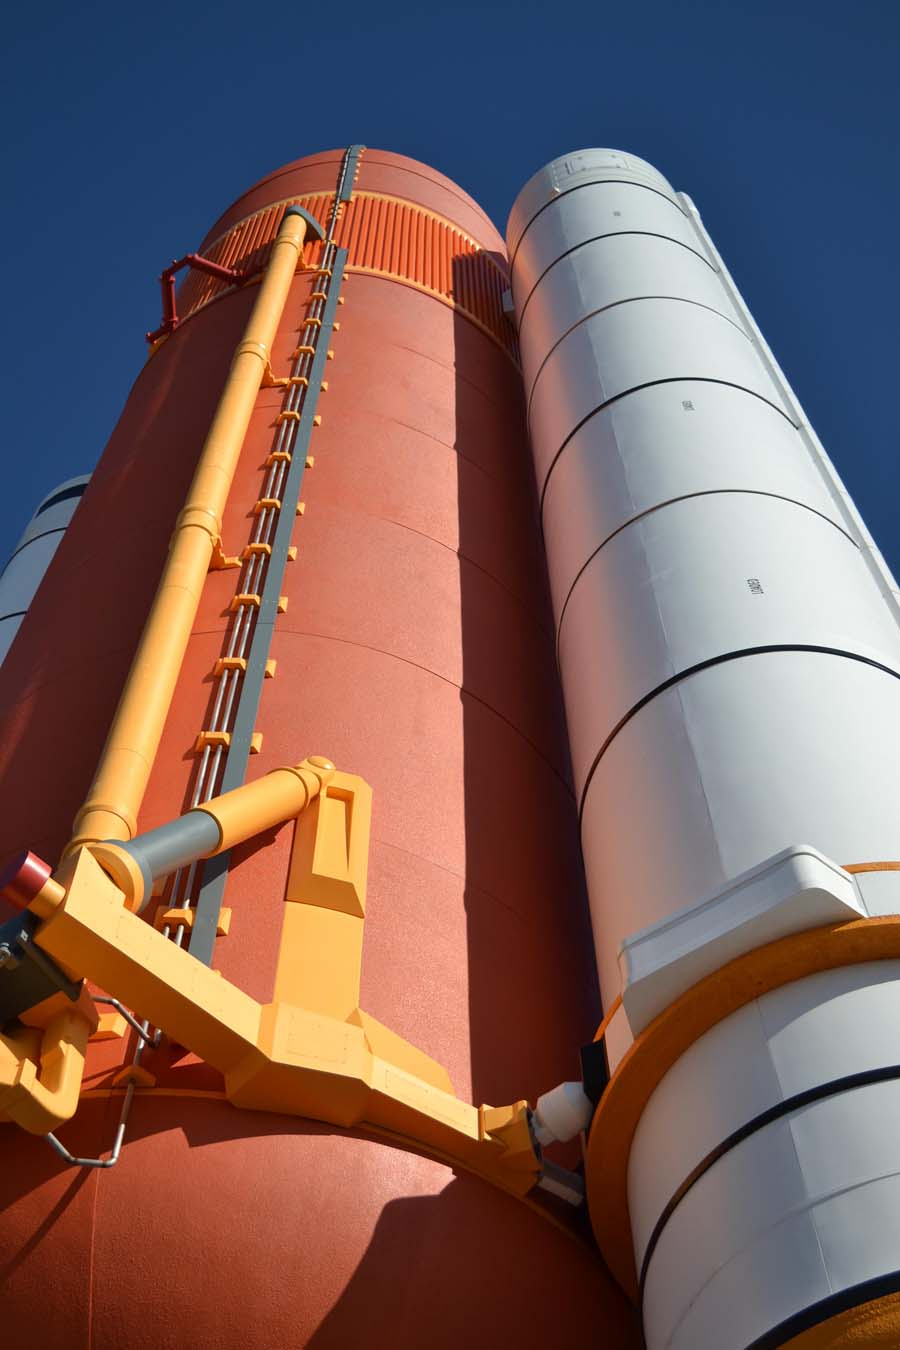 separation of booster rockets and space shuttle external tank - photo #5